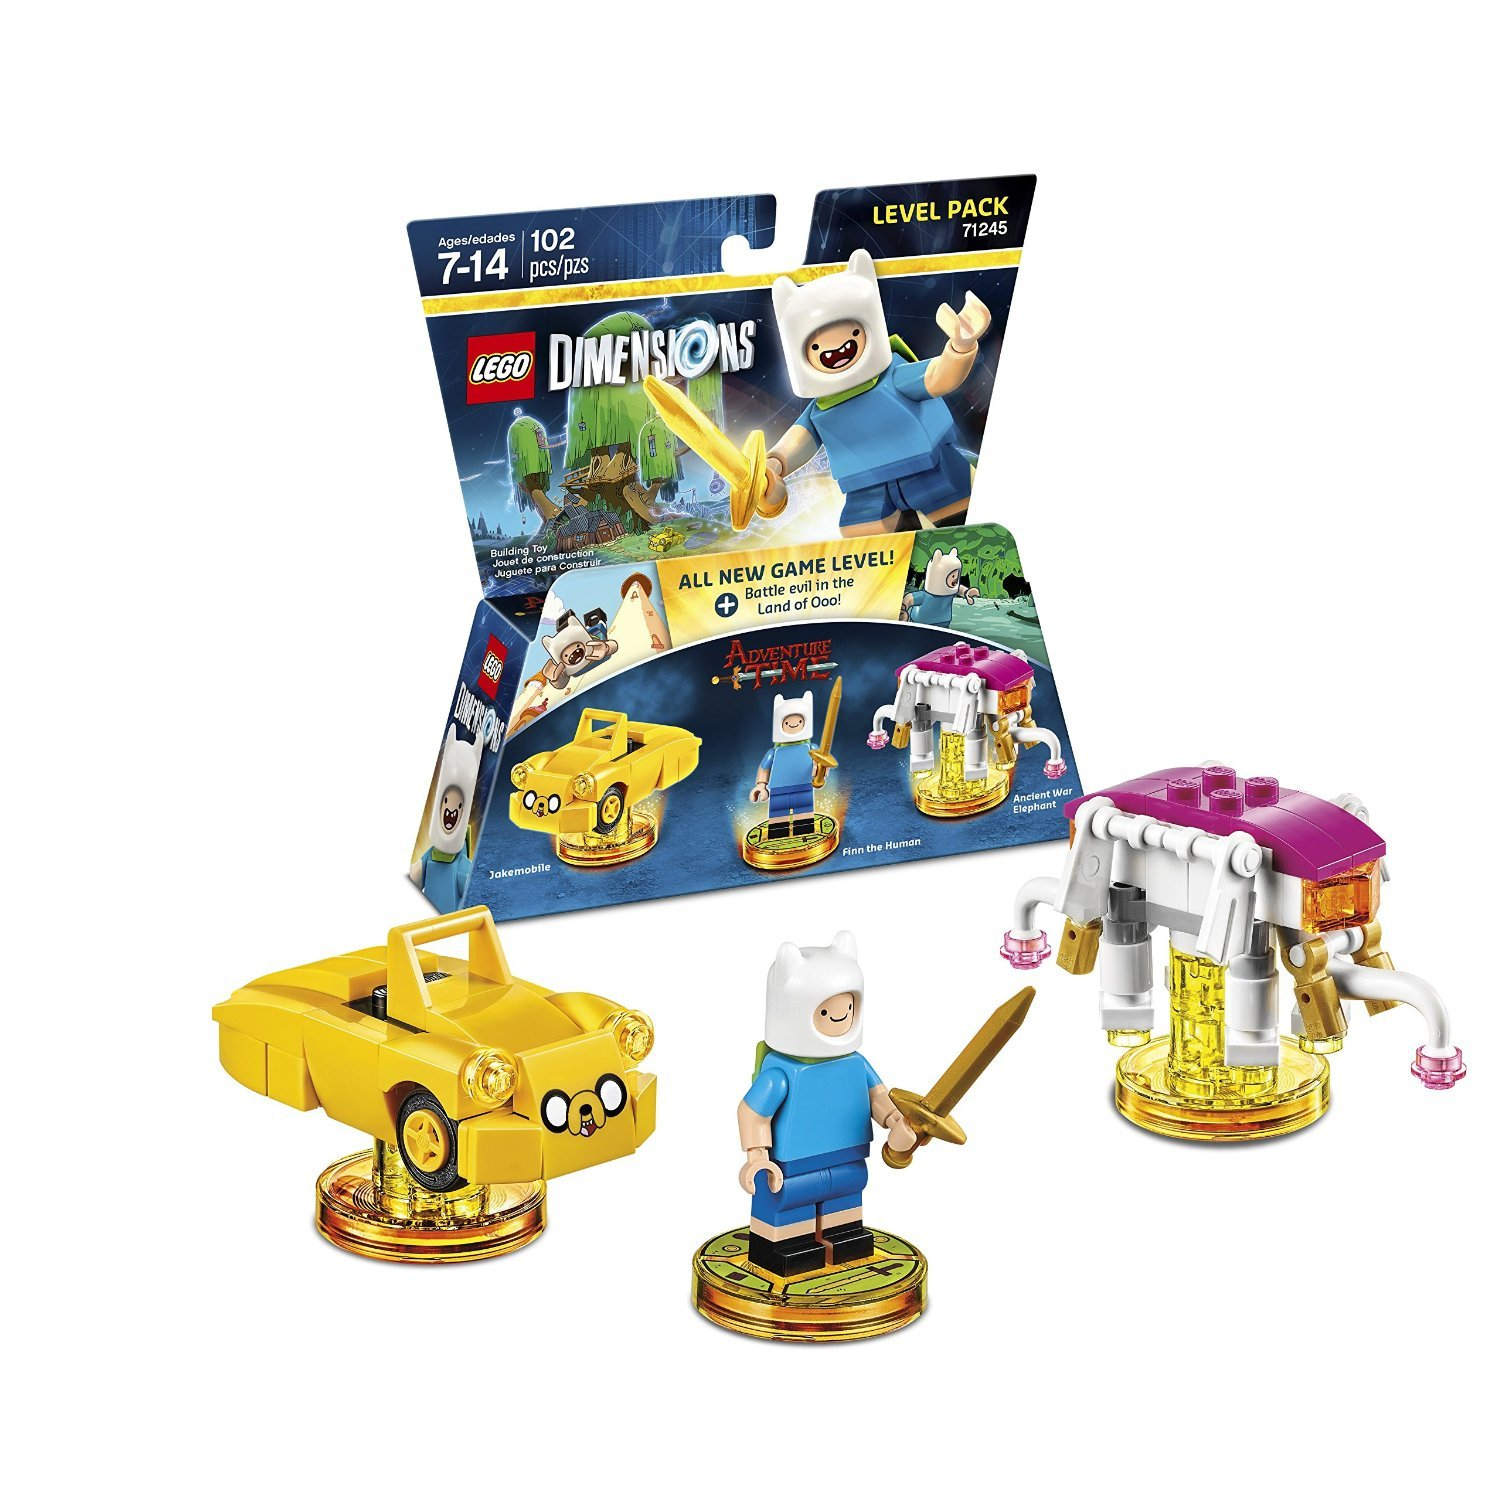 Ninjago Cole & Kai Team Pack + Adventure Time Finn The Human Level Pack + Scooby Doo Team Pack - Lego Dimensions (Non Machine Specific) by WB Lego (Image #3)